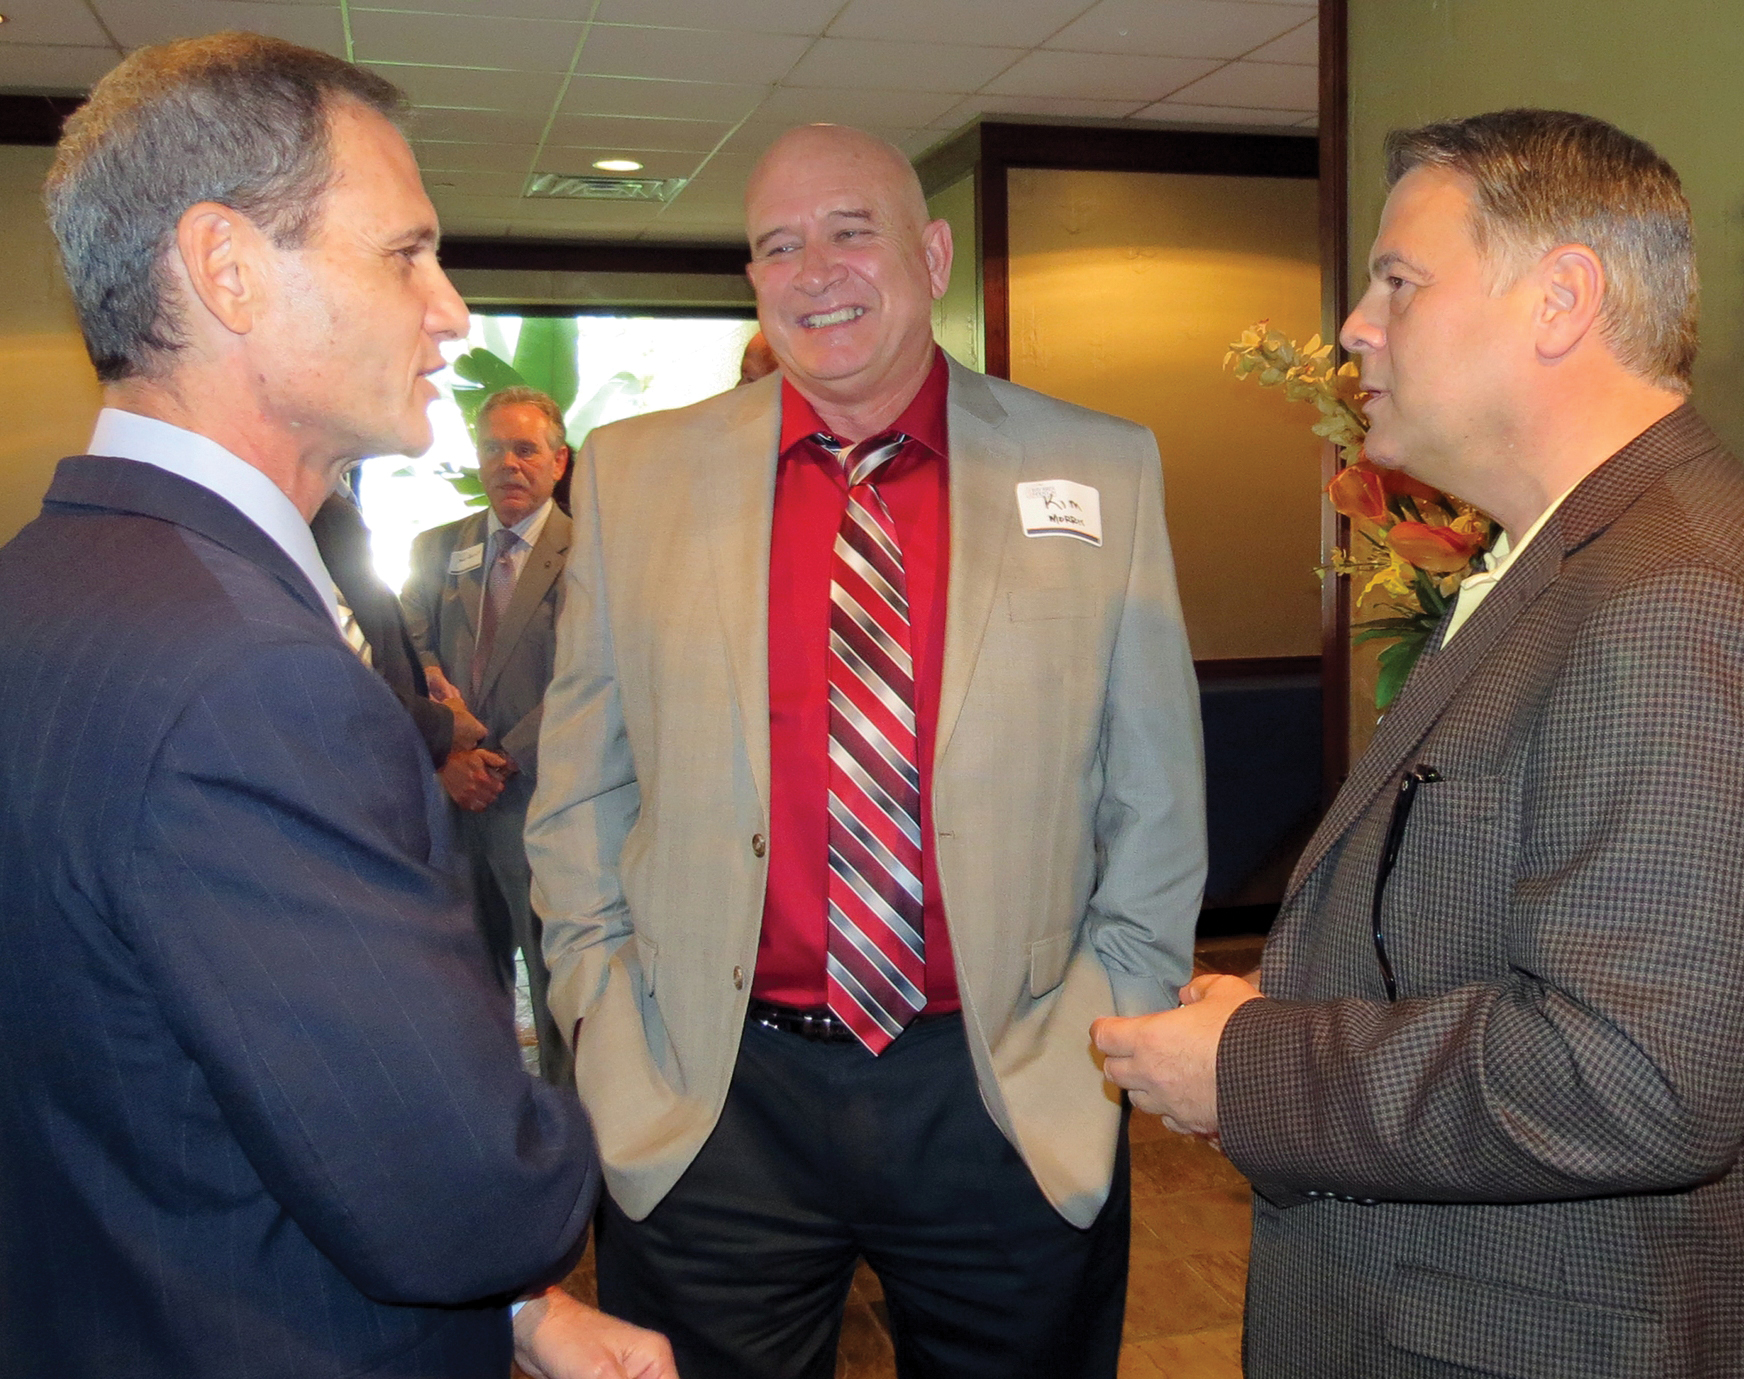 Bay Tech Director Kim Morris, center, talks with George Abbey Jr., right, and Intuitive Machines Executive Vice President Mark Gittleman.